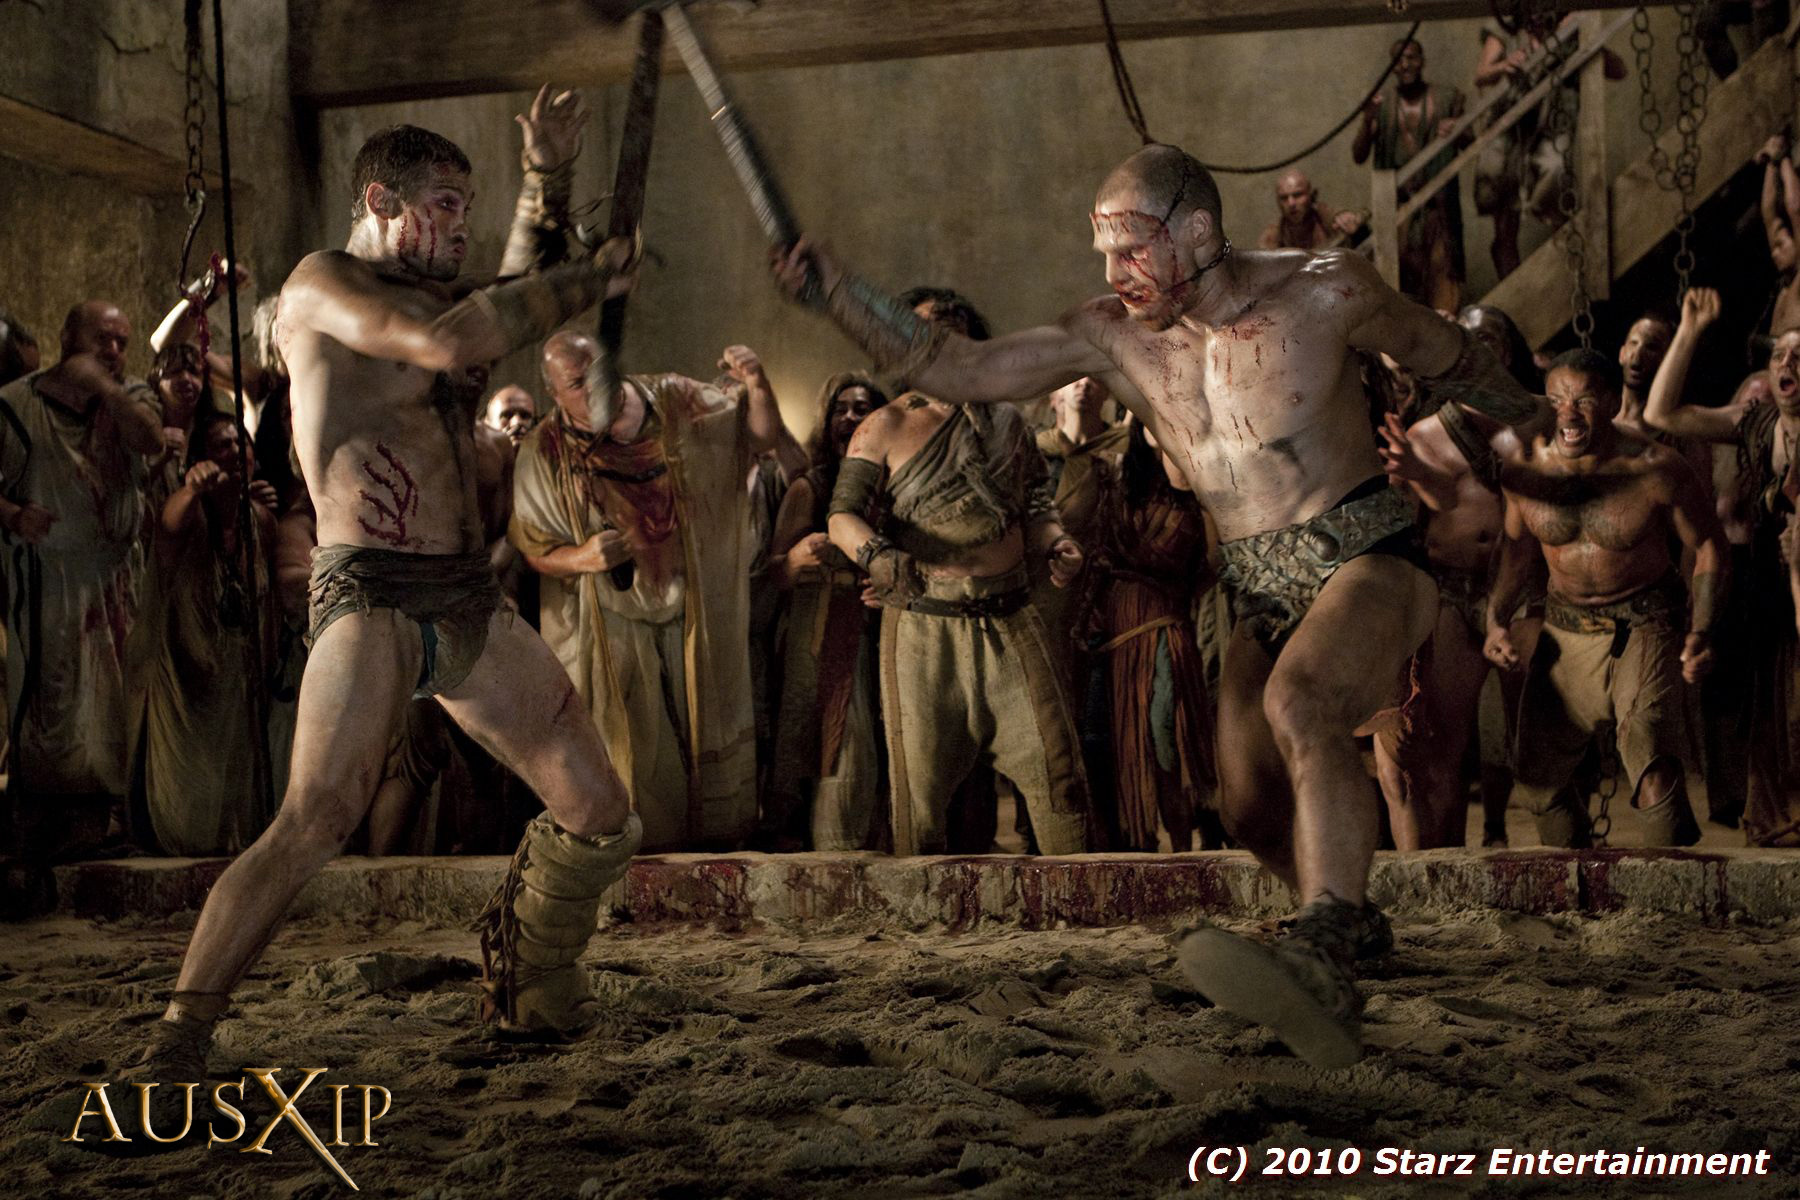 spartacus blood and sand Find out when spartacus: blood and sand: the red serpent is on tv episode guide, trailer, review, preview, cast list and where to stream it on demand, on catch up and download.